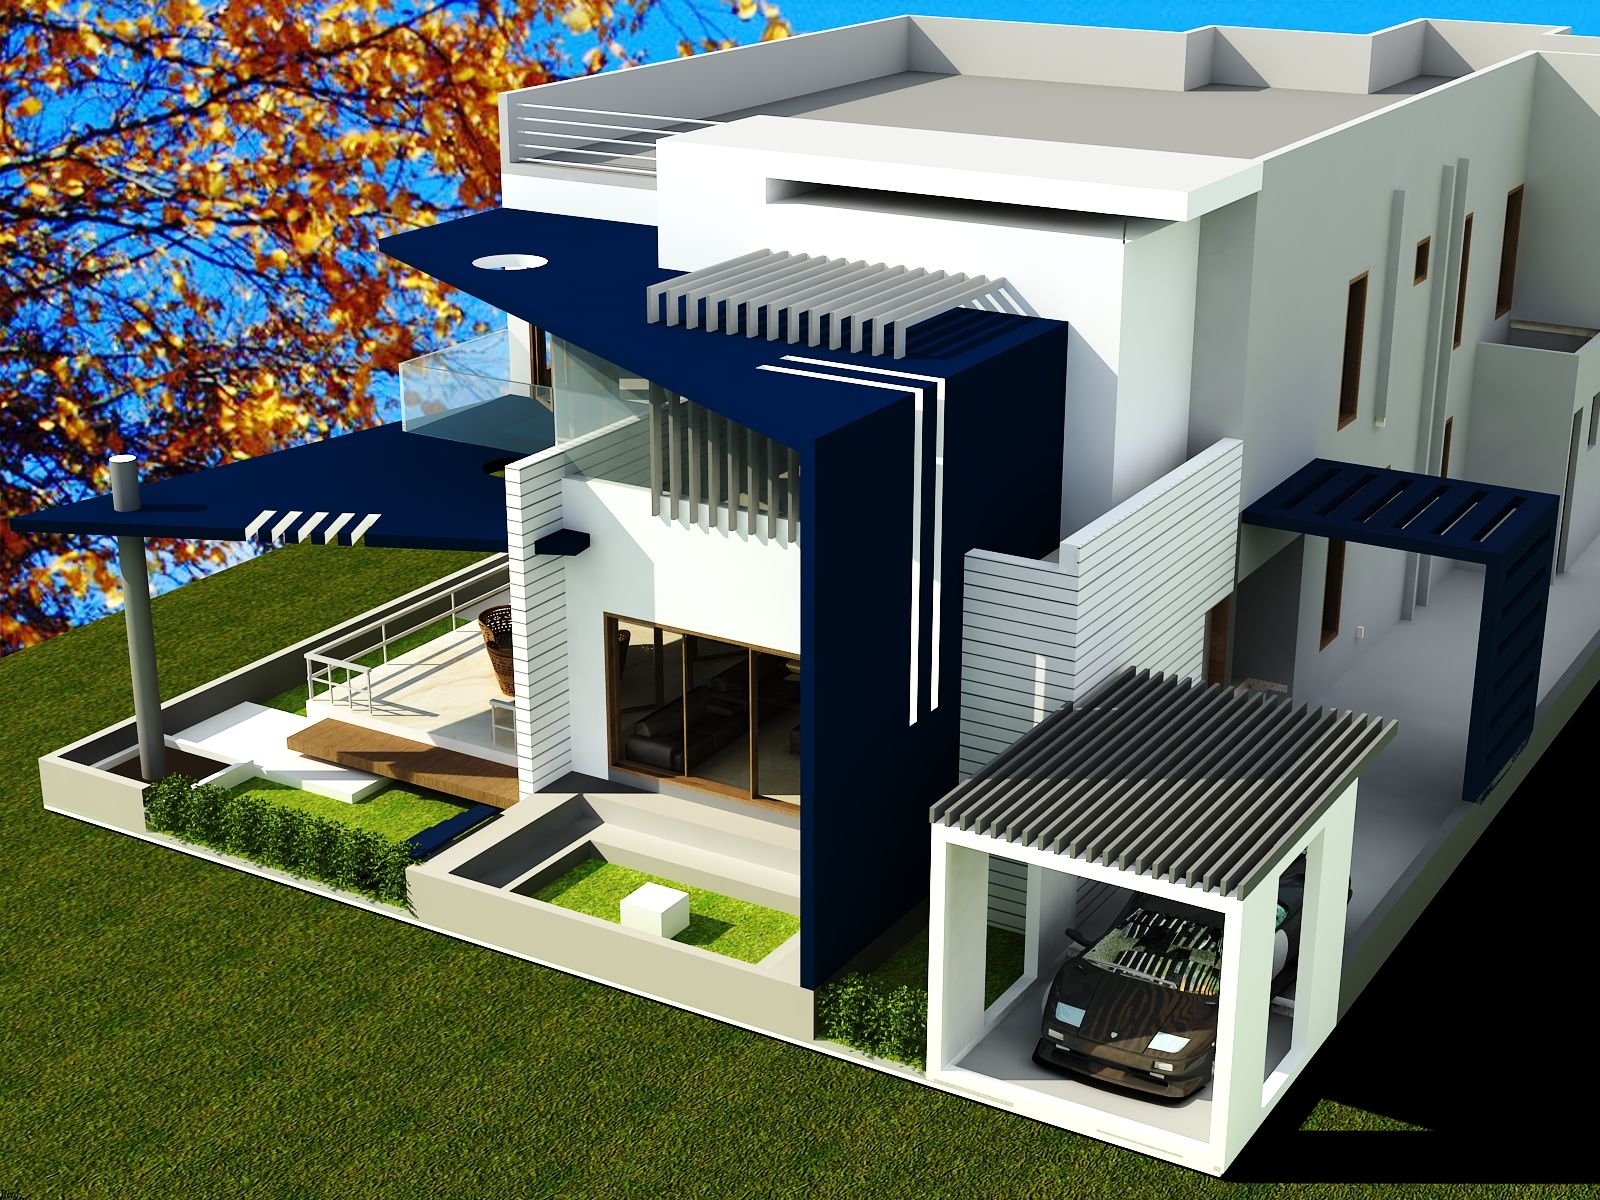 Duplex house plans address need of Unique Family Sizes in India